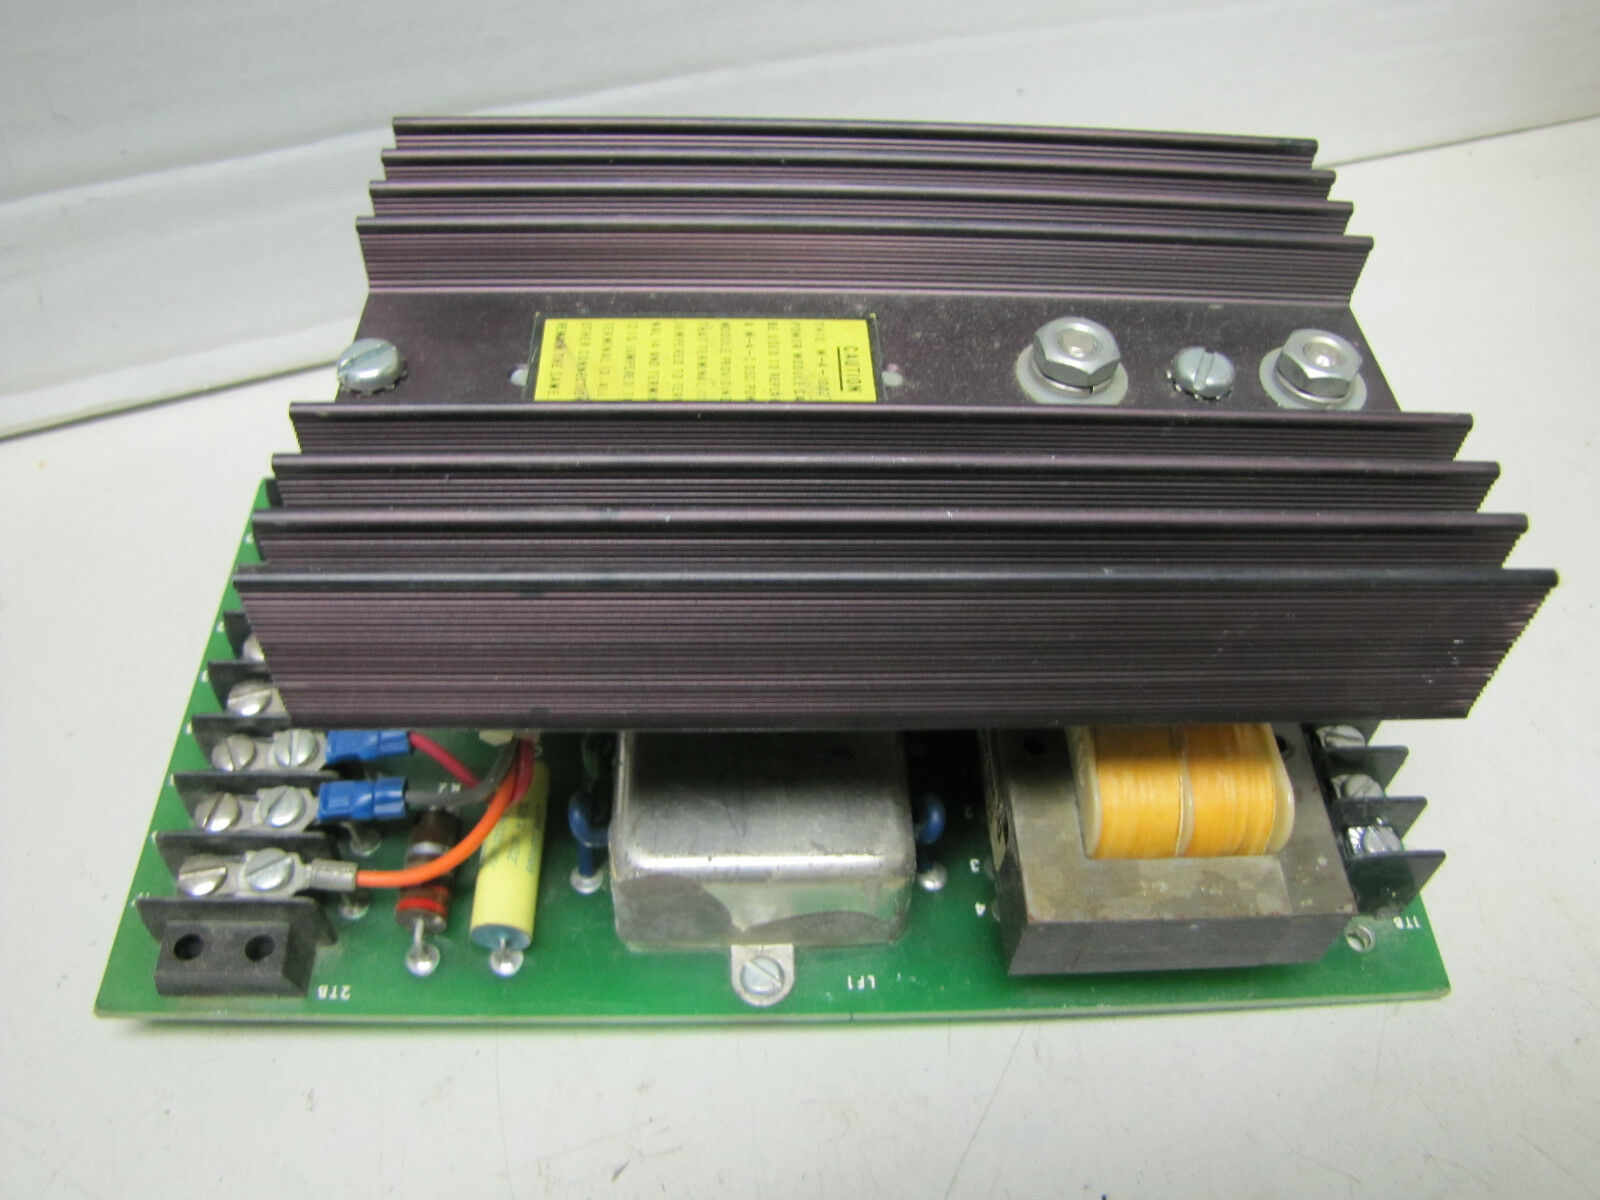 ACRISON DSC CIRCUIT BOARD POWER MODULE 1HP ACR M-4-1002 115-0394 M41002 1150394